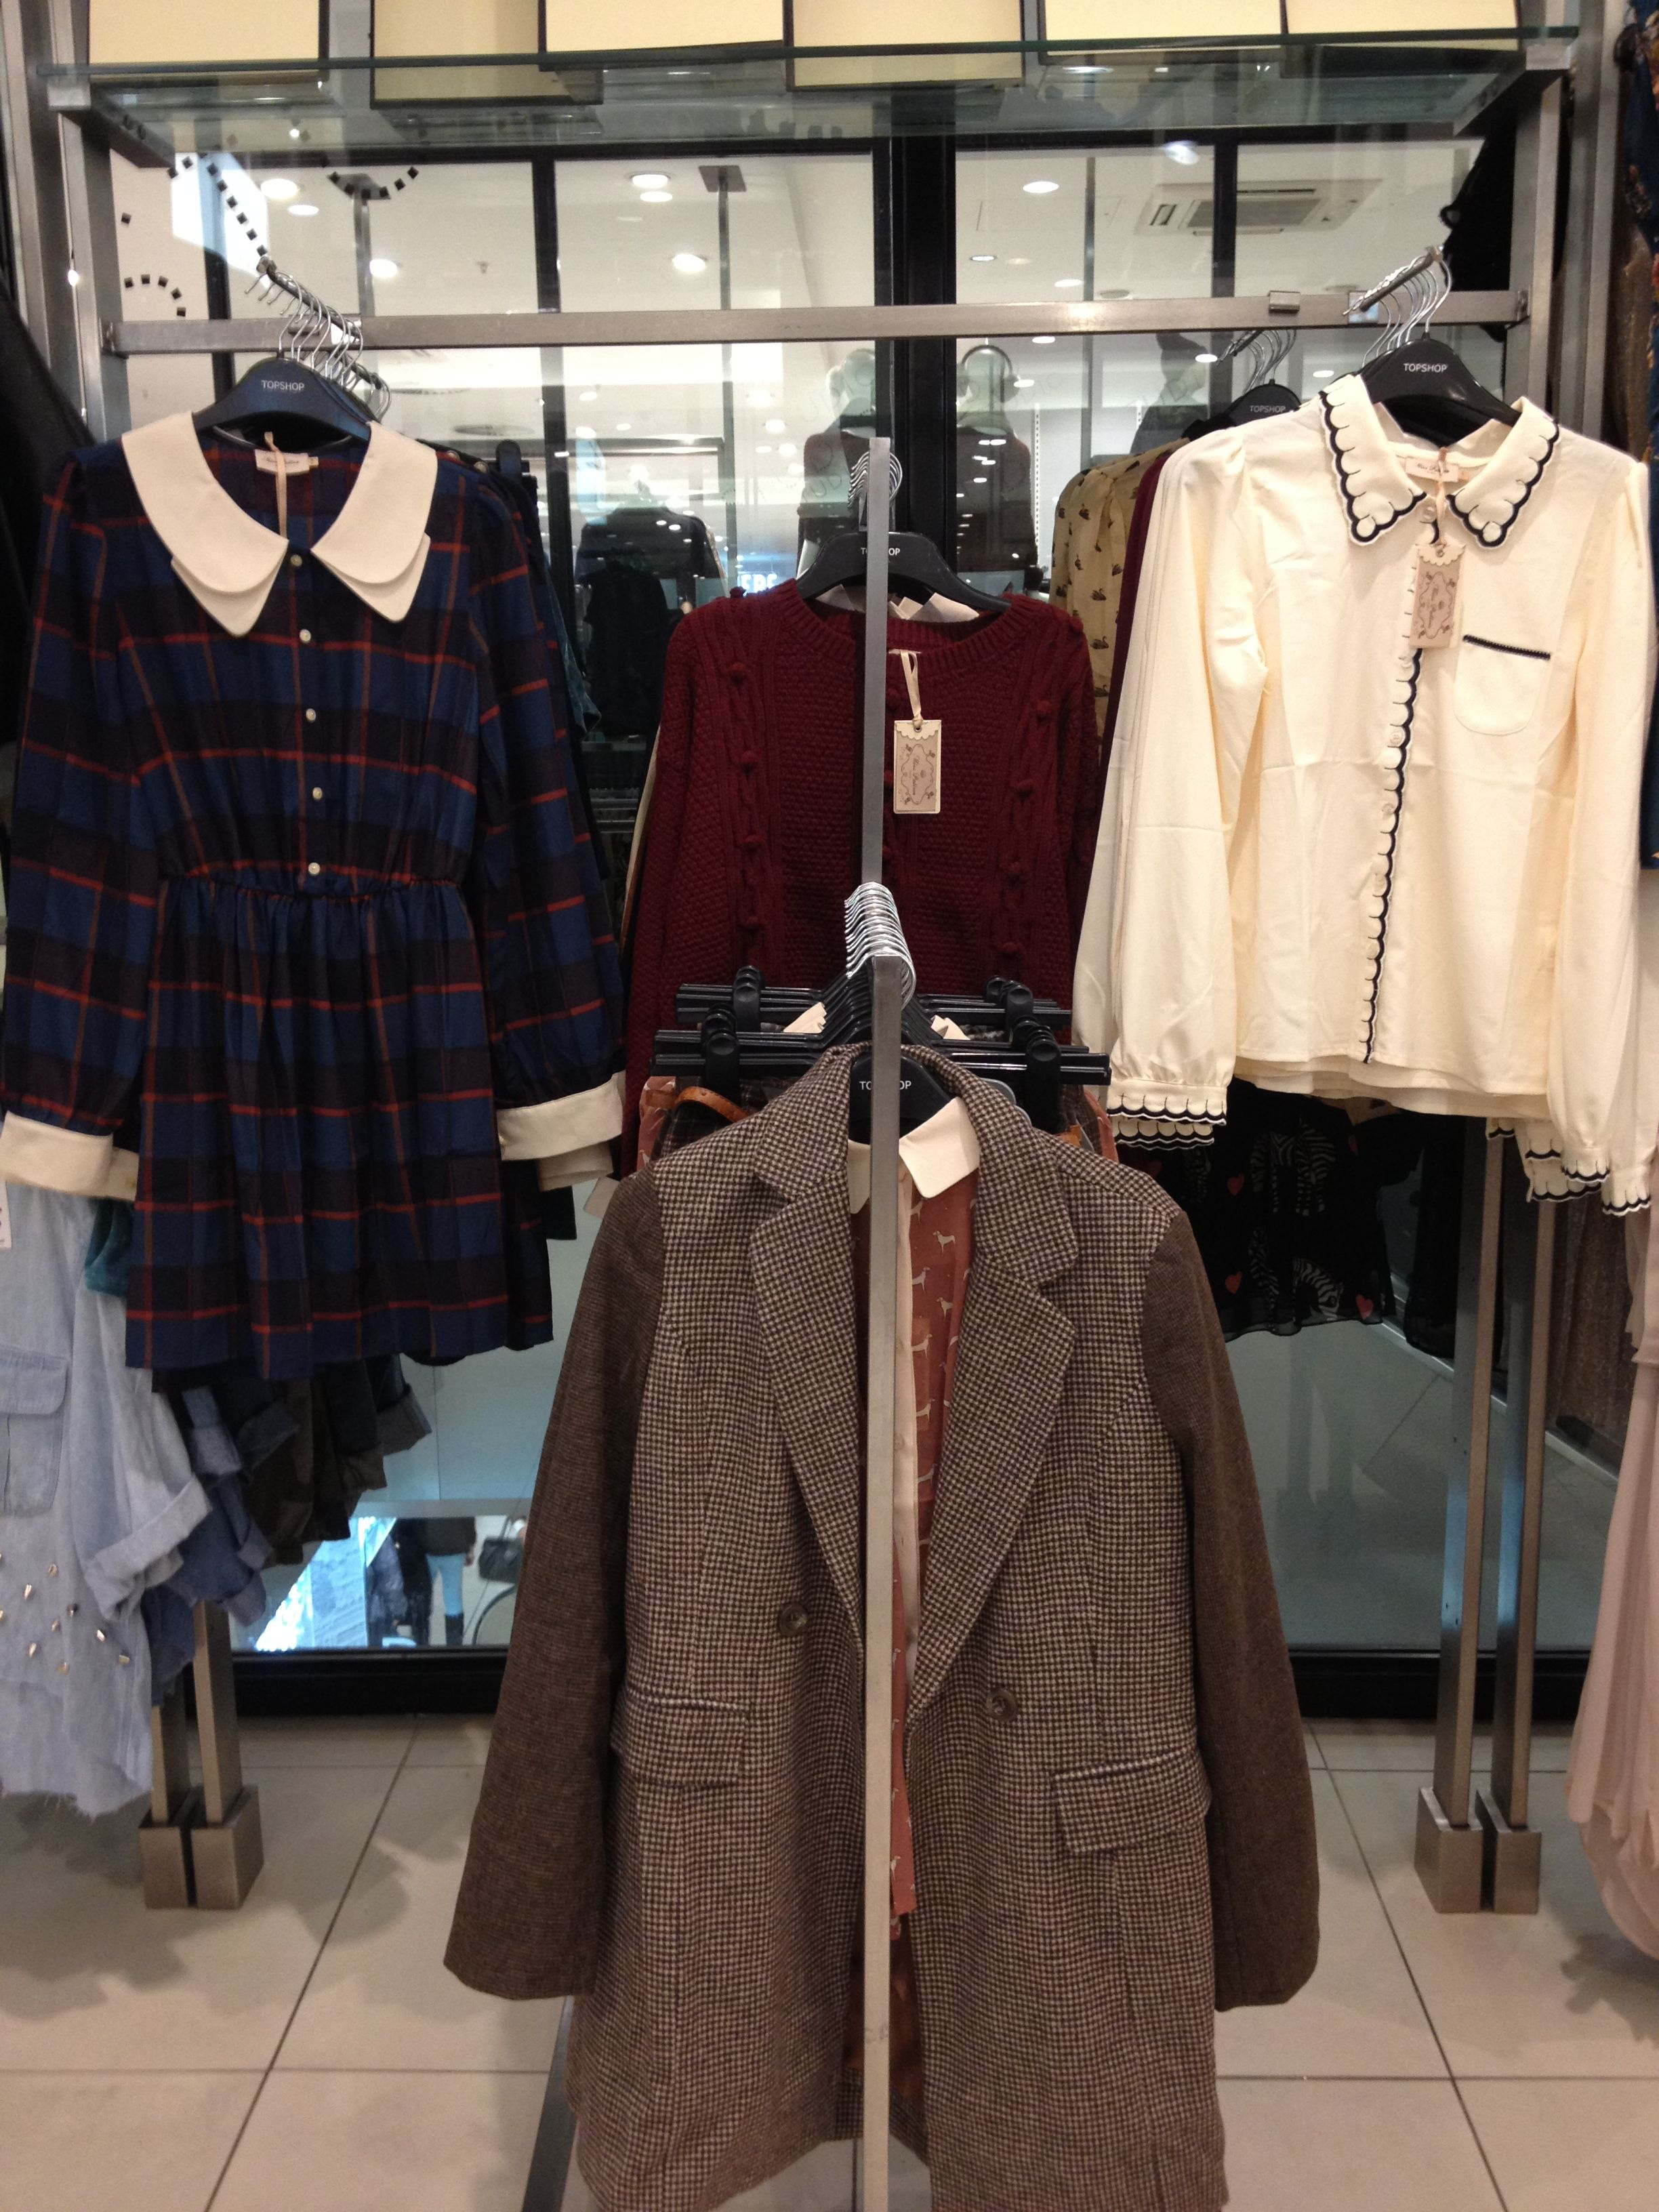 Our Concession Fixture In Topshop Manchester Miss Patina In Topshop Pinterest Topshop November 2013 And November